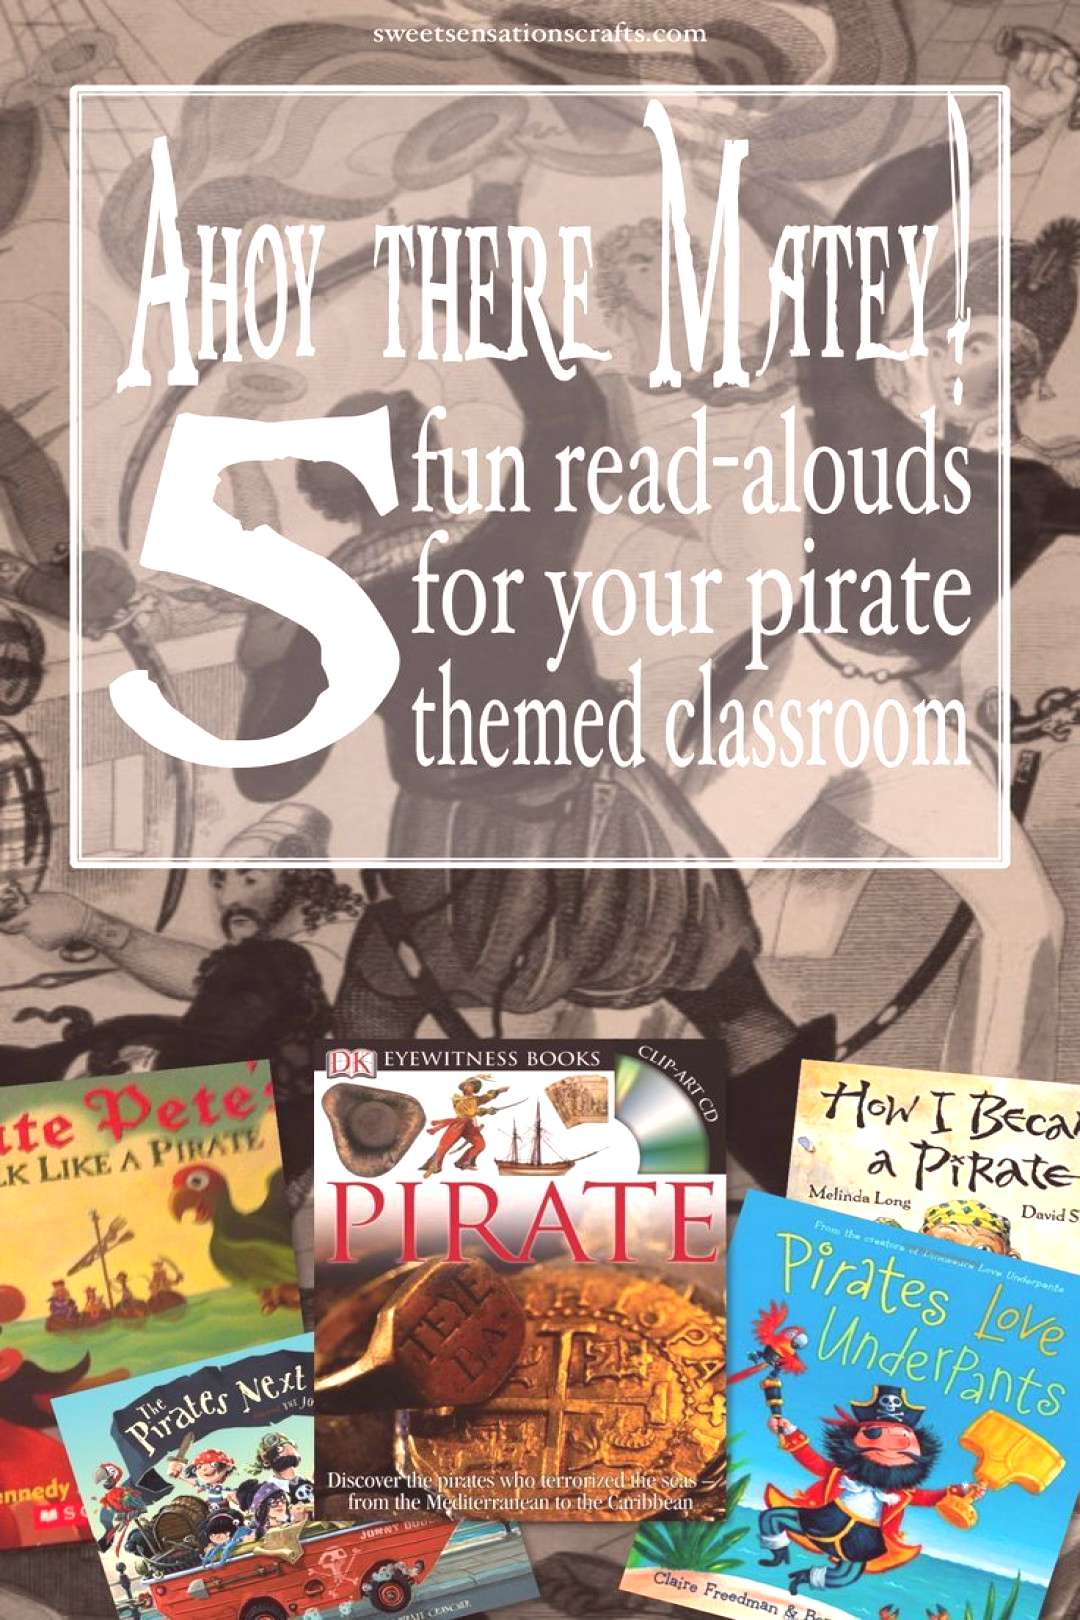 Ahoy there! 5 books for your pirate themed classroom! Pirate books for your pirate themed classroom